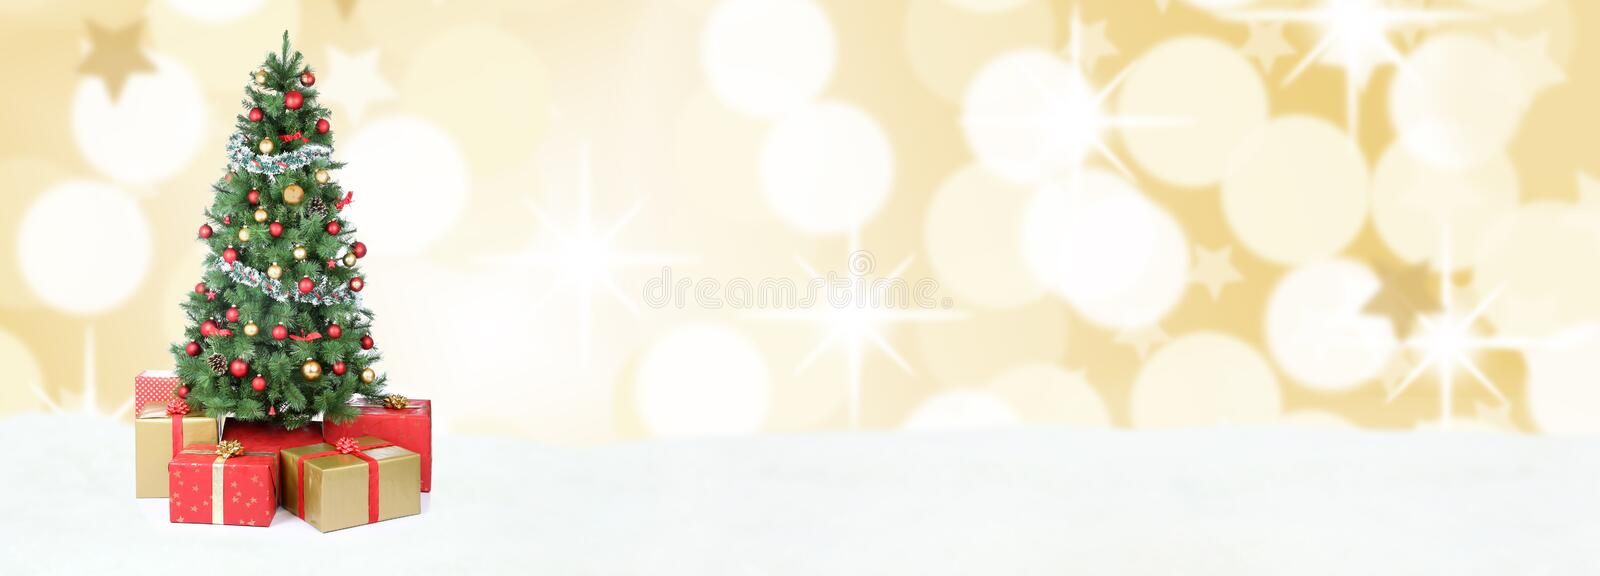 Christmas tree background banner snow golden balls decoration co stock image